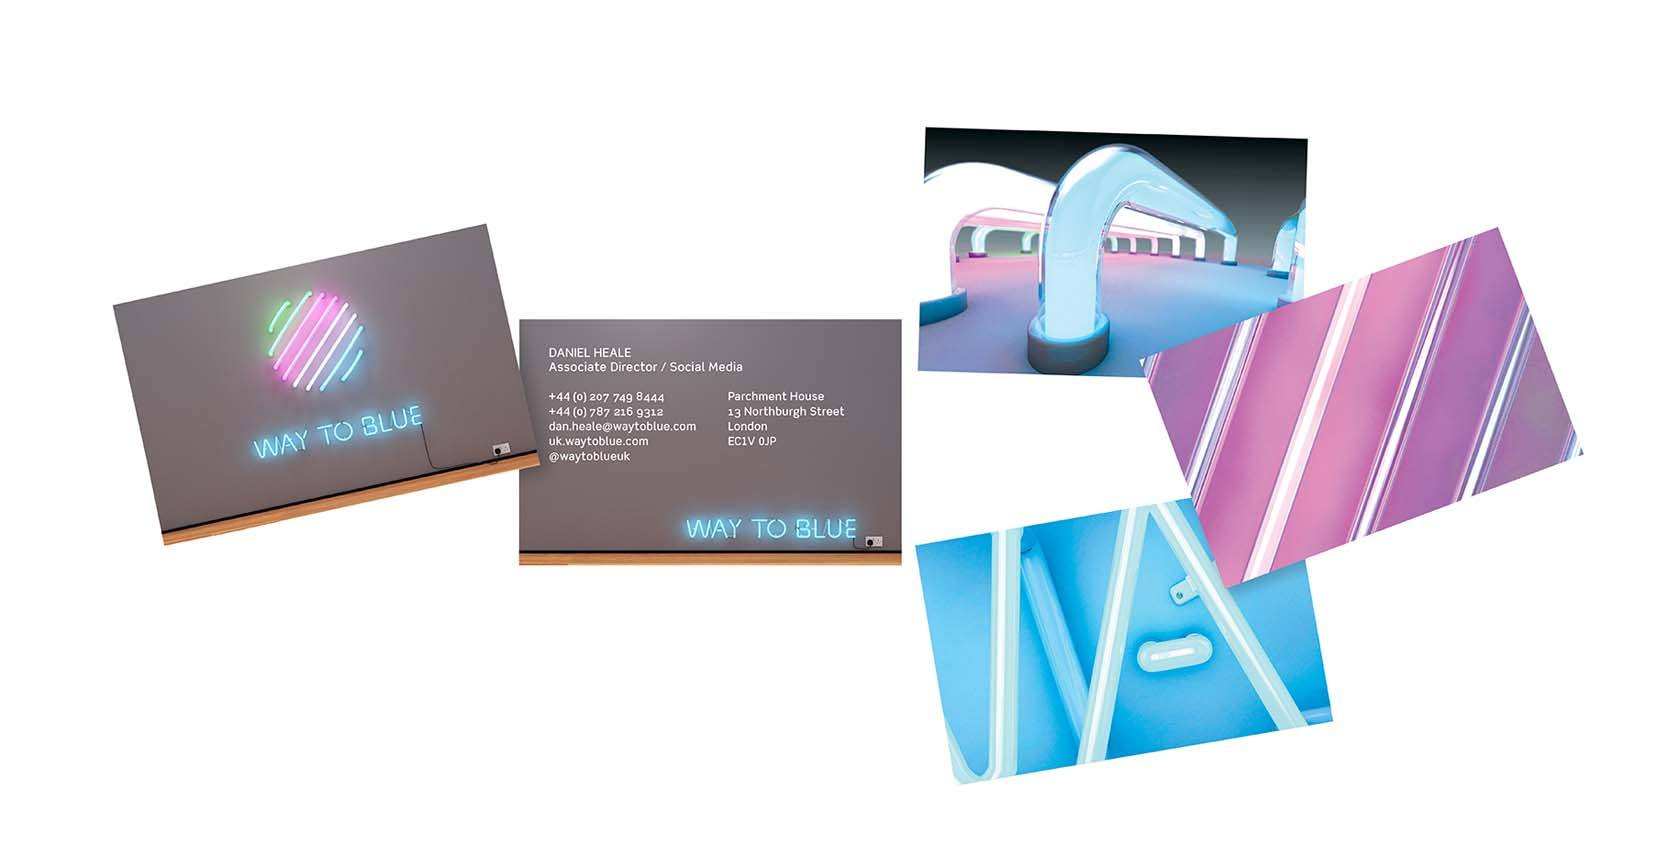 WMH-WAY-TO-BLUE-BUSINESS-CARDS-WEB image